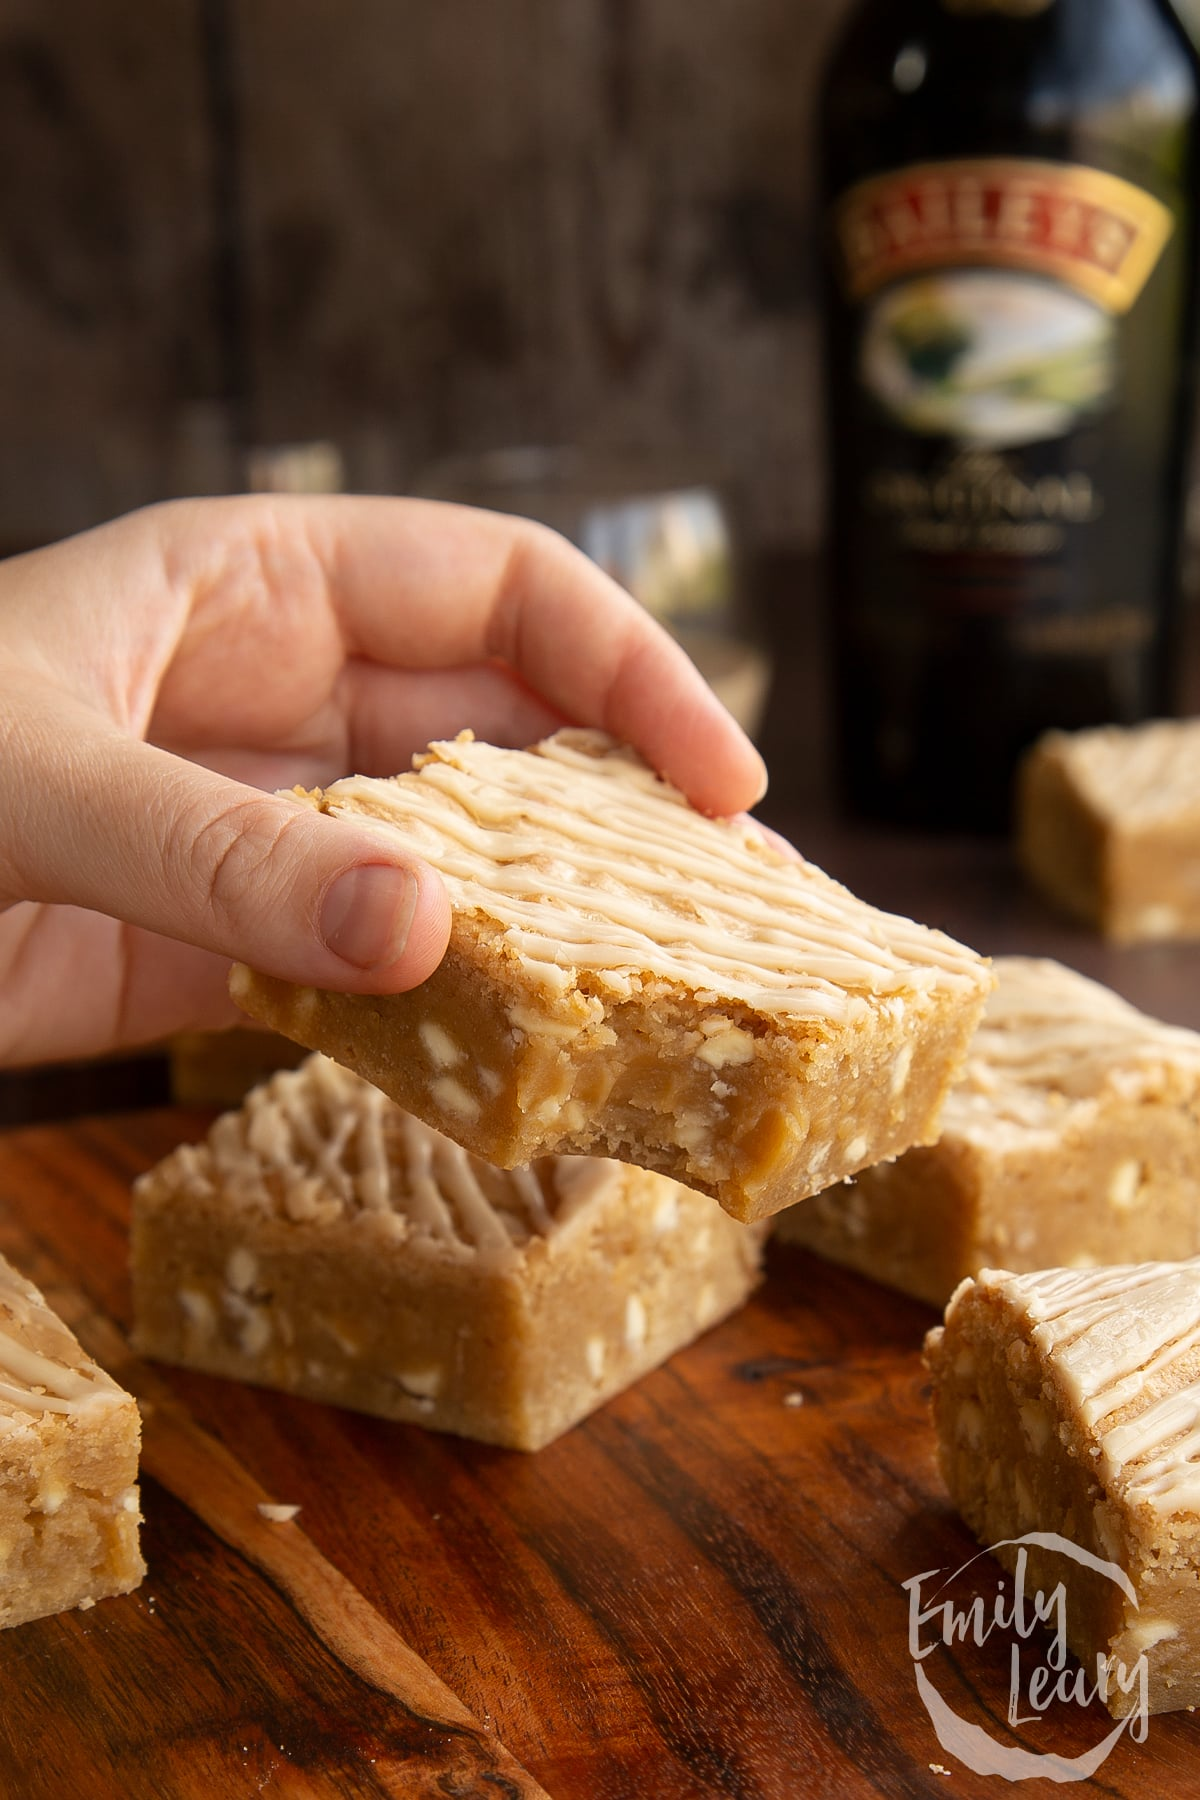 Baileys blondies on a wooden board. A hand holds one with a bite out of it.